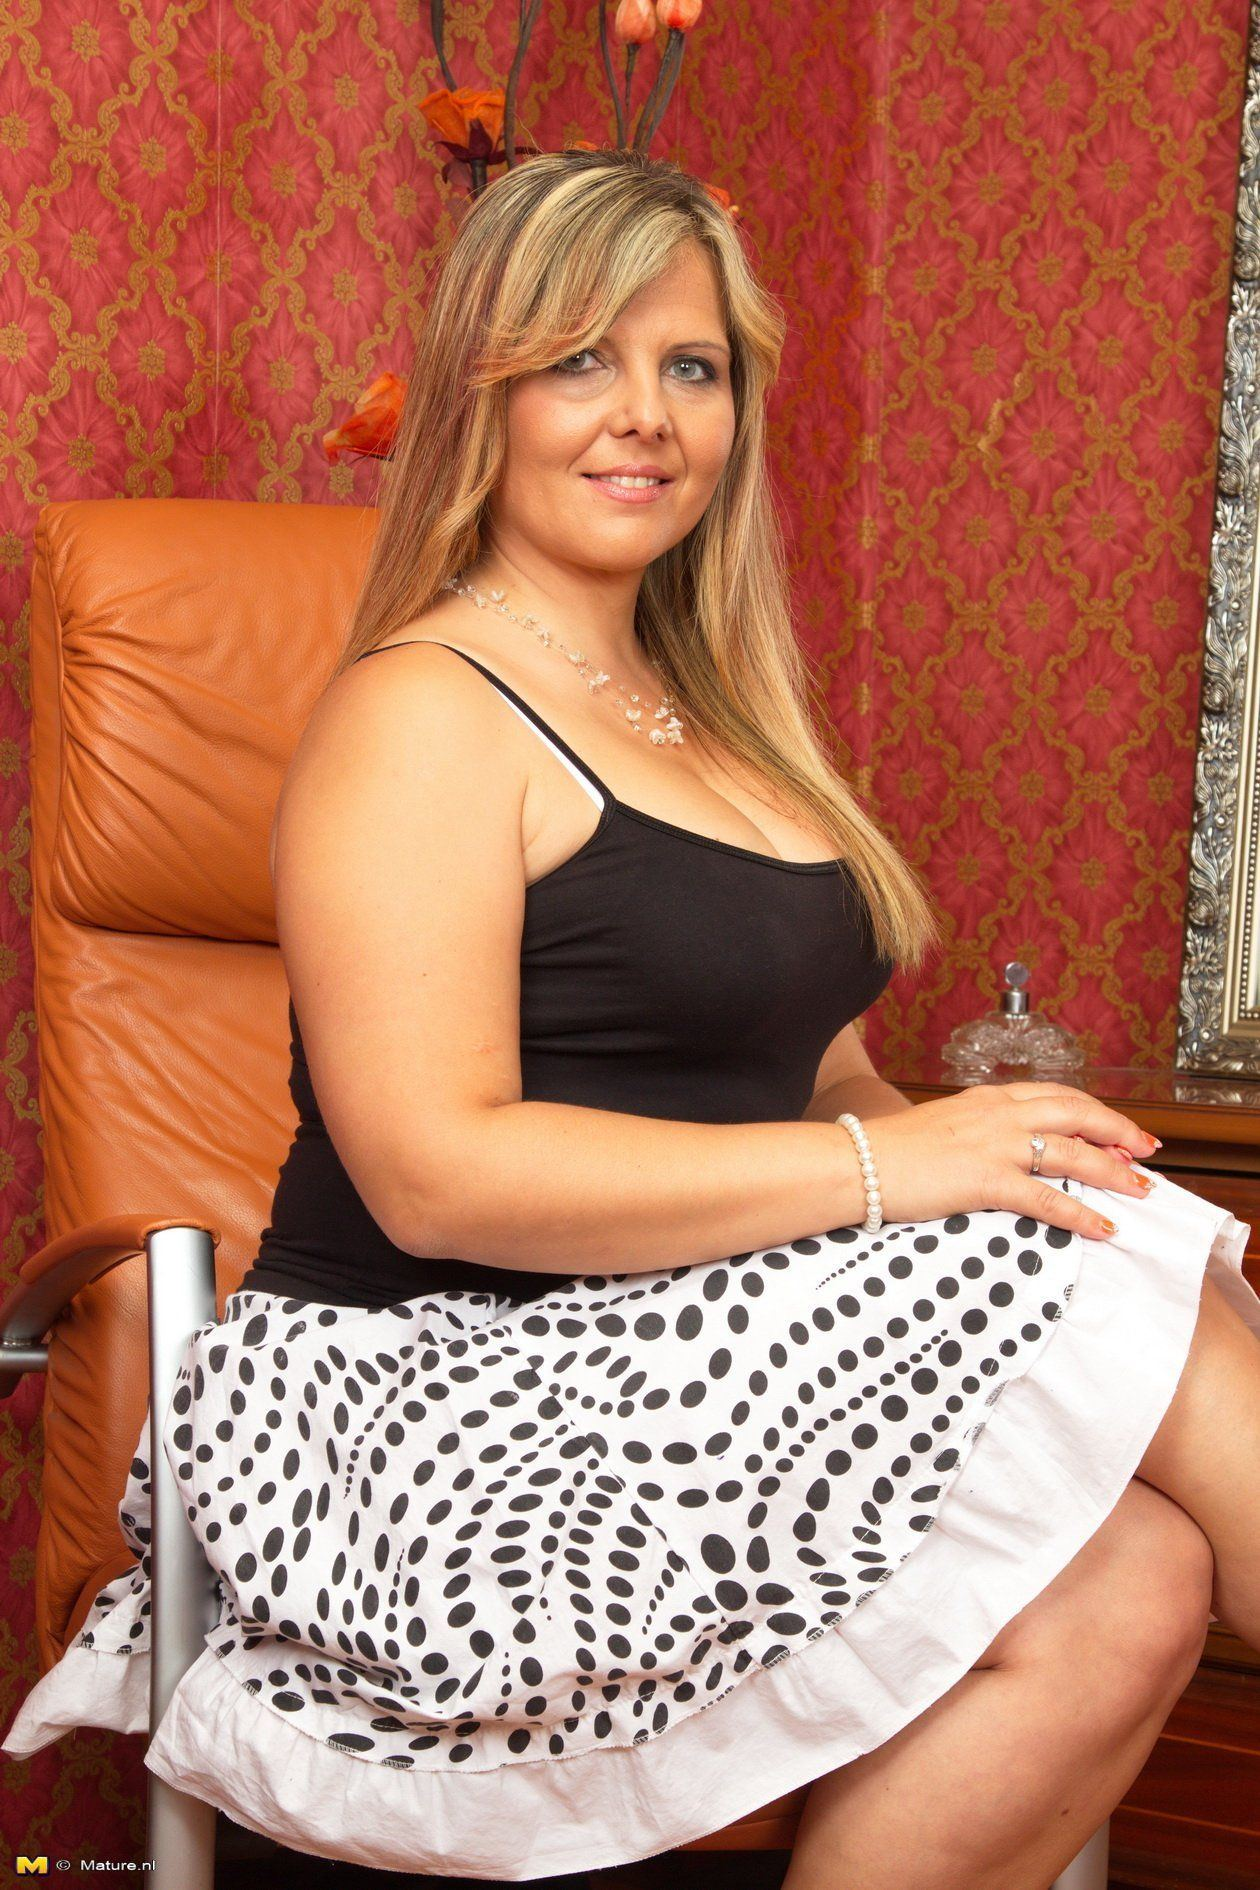 Mayure busty housewife. XXX new pics site.